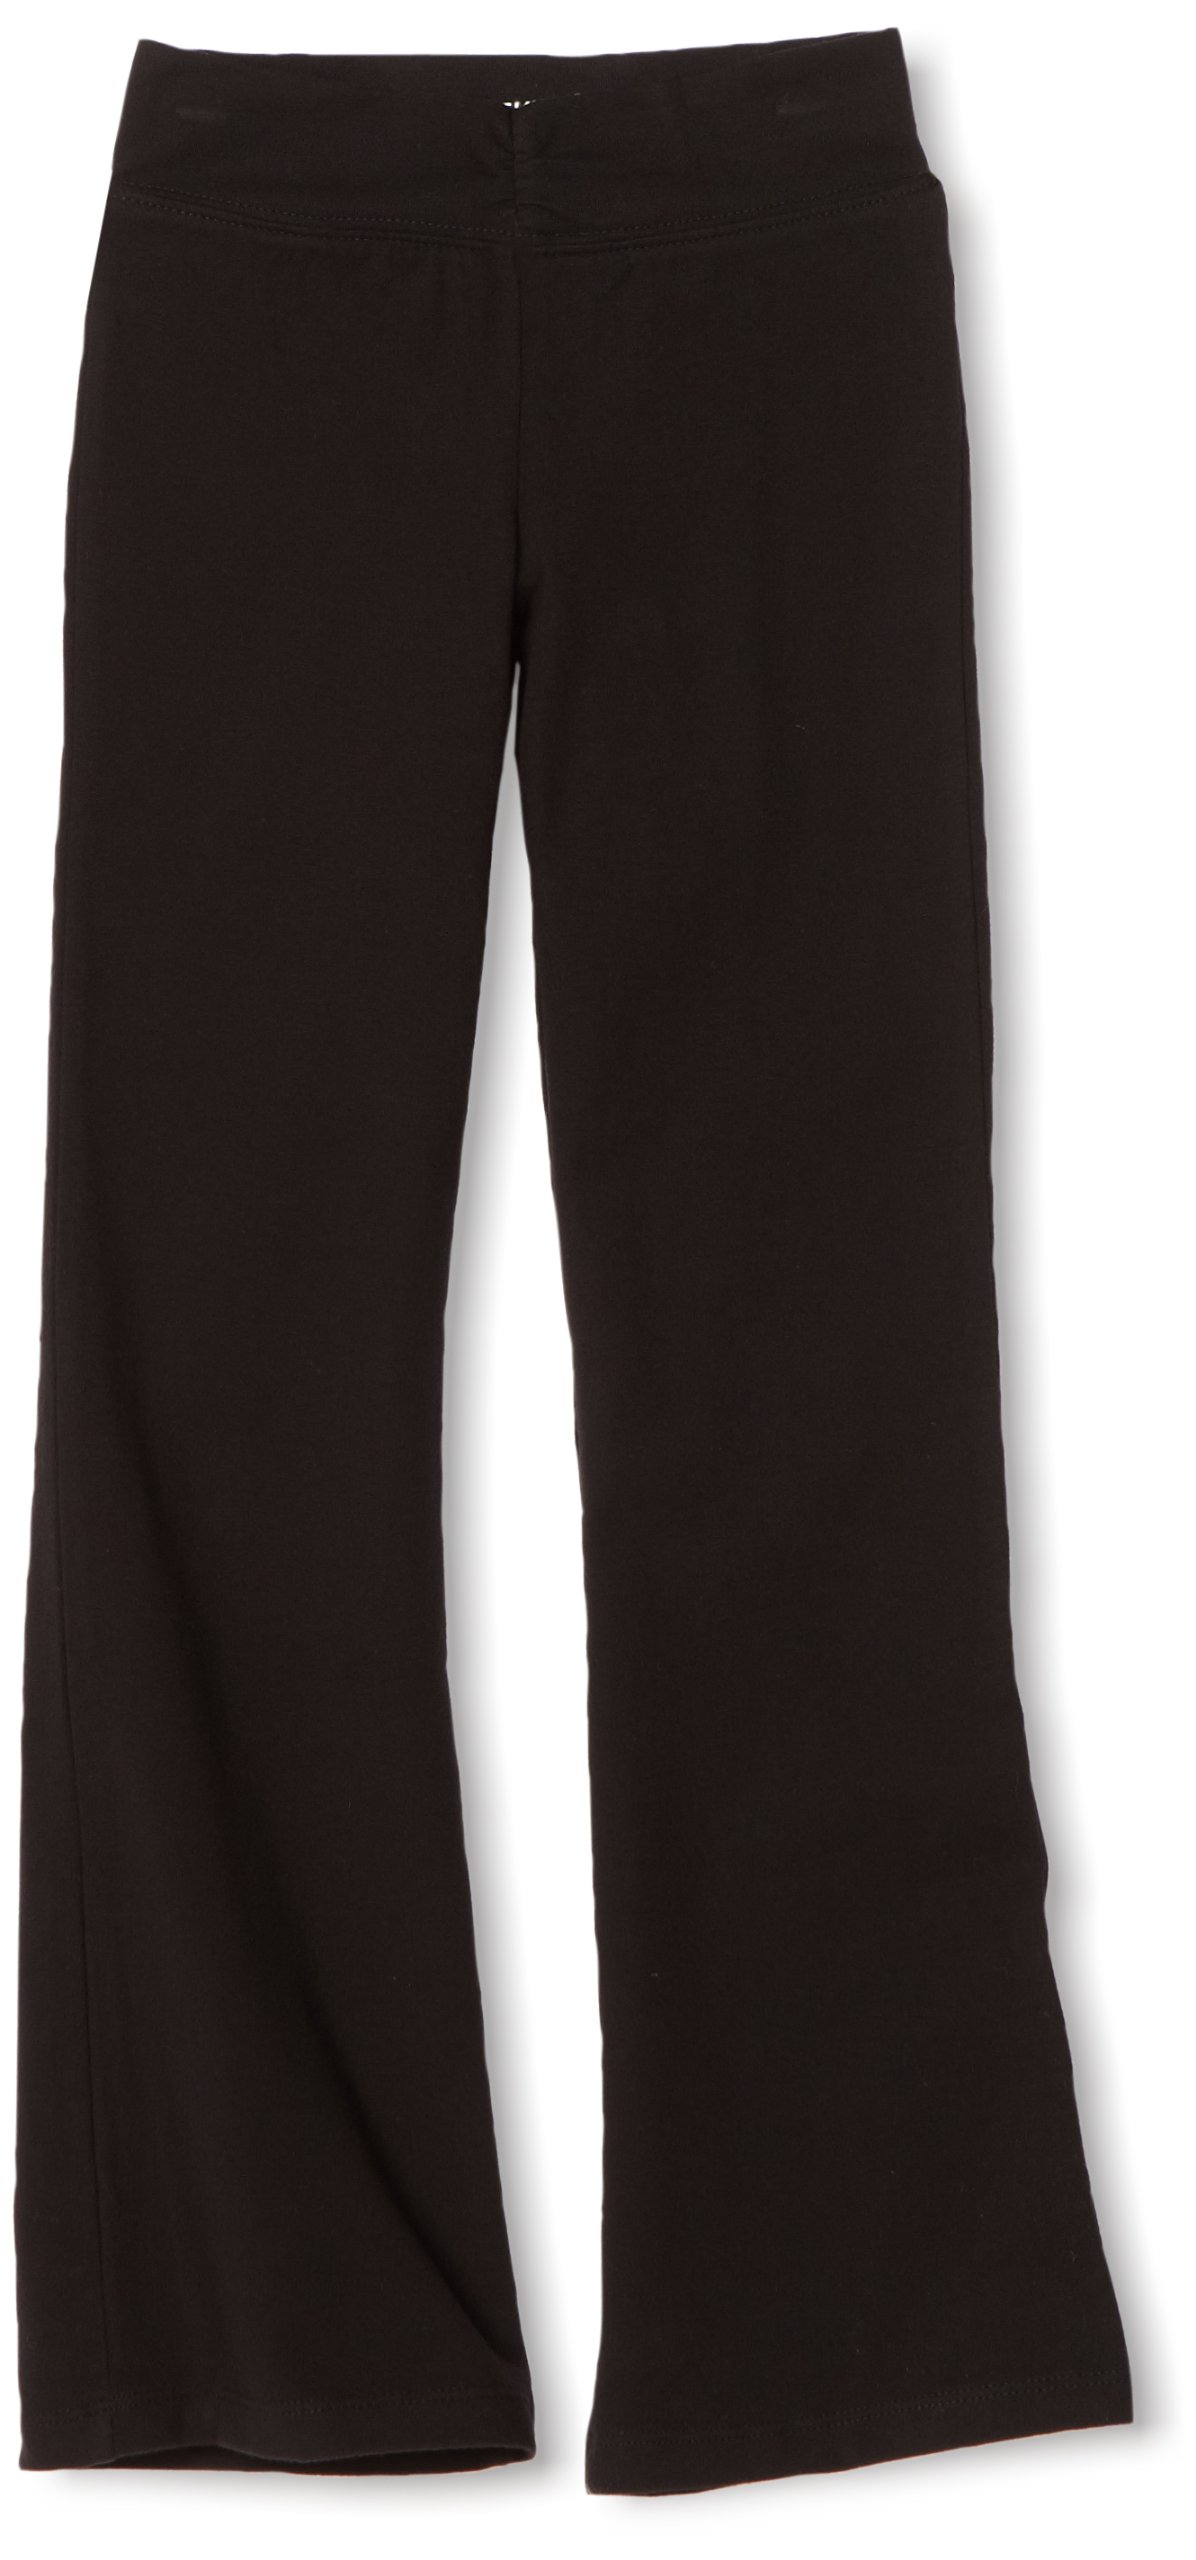 Danskin Big Girls' Shirred Waist Bootleg Pant, Black, Intermediate